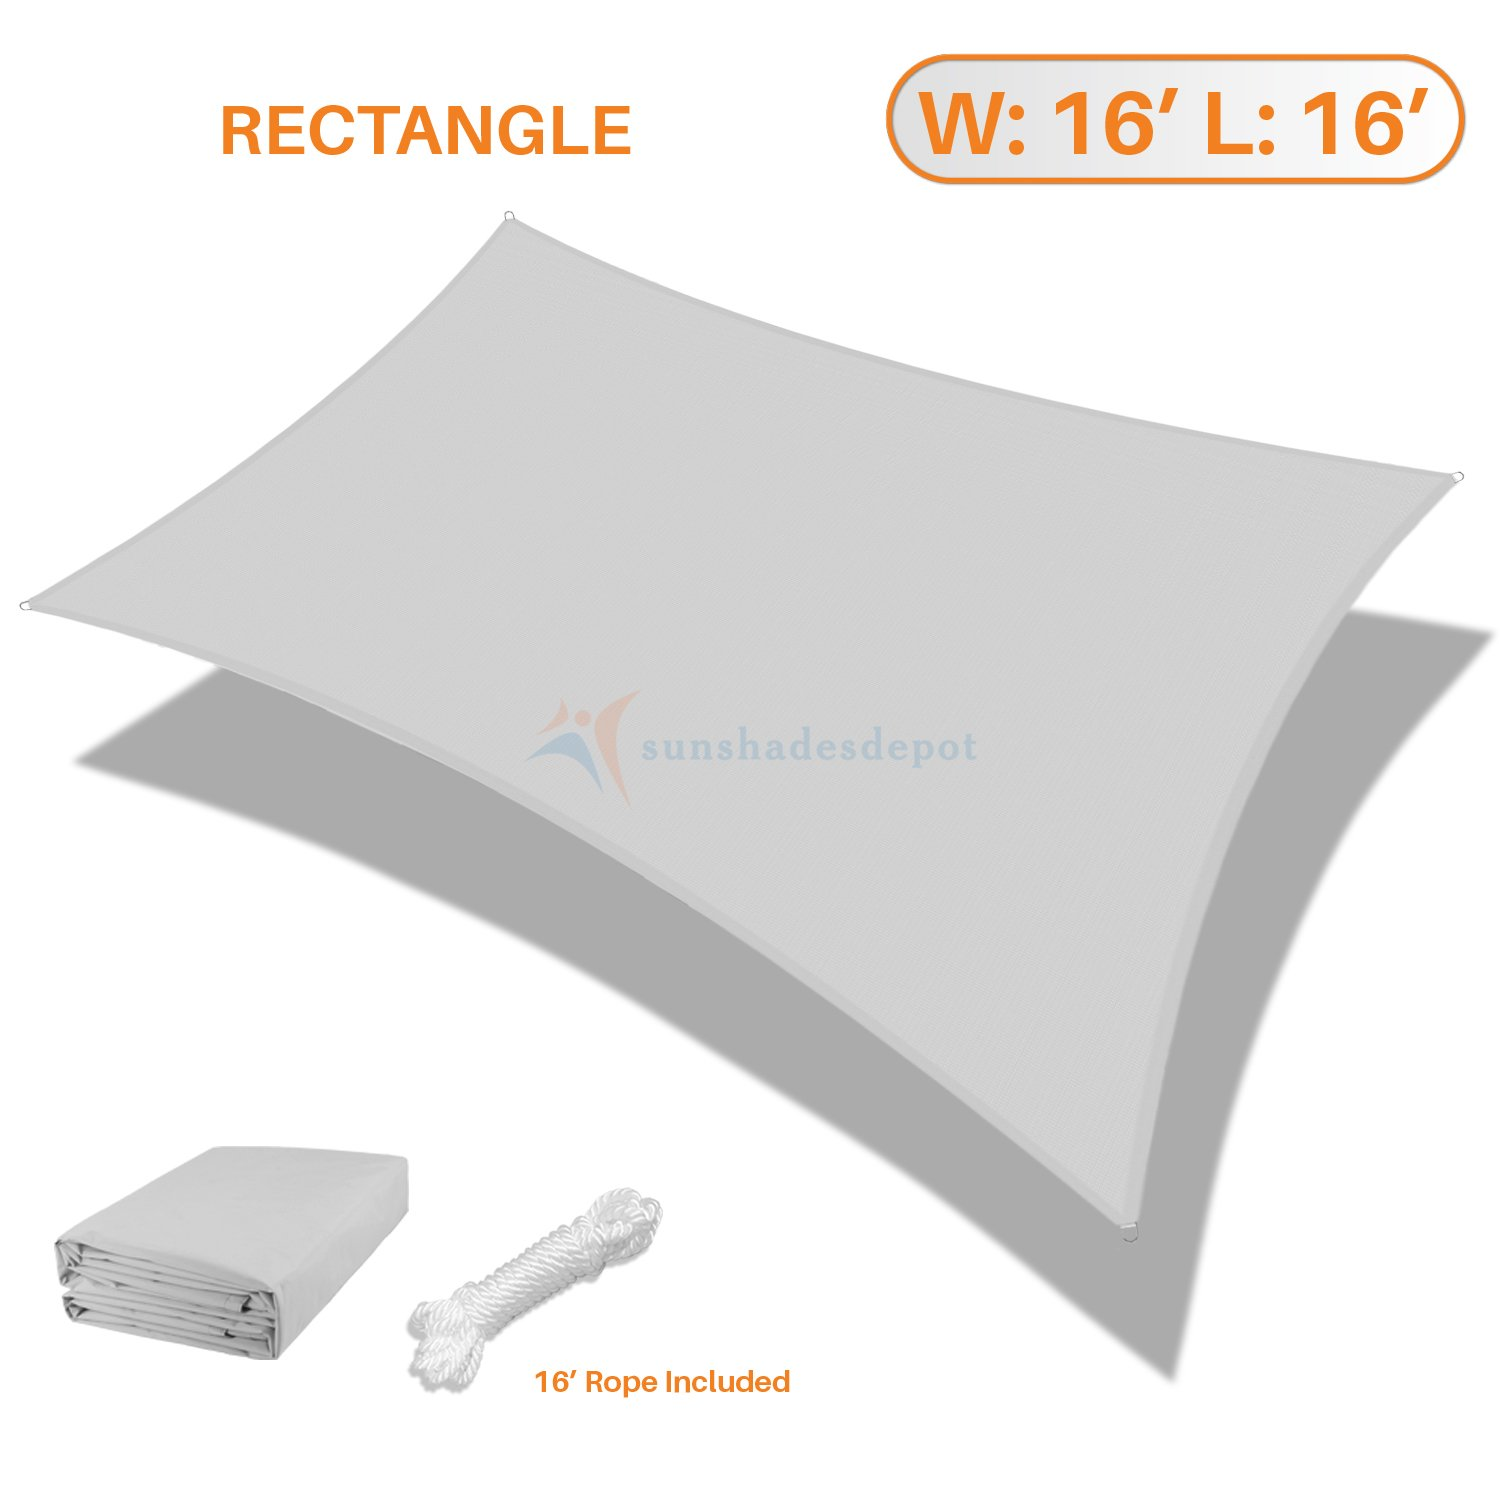 Sunshades Depot 16' x 16' Square Waterproof Knitted Shade Sail Curved Edge Light Gray/Light Grey 220 GSM UV Block Shade Fabric Pergola Carport Canopy Replacement Awning Customize Available